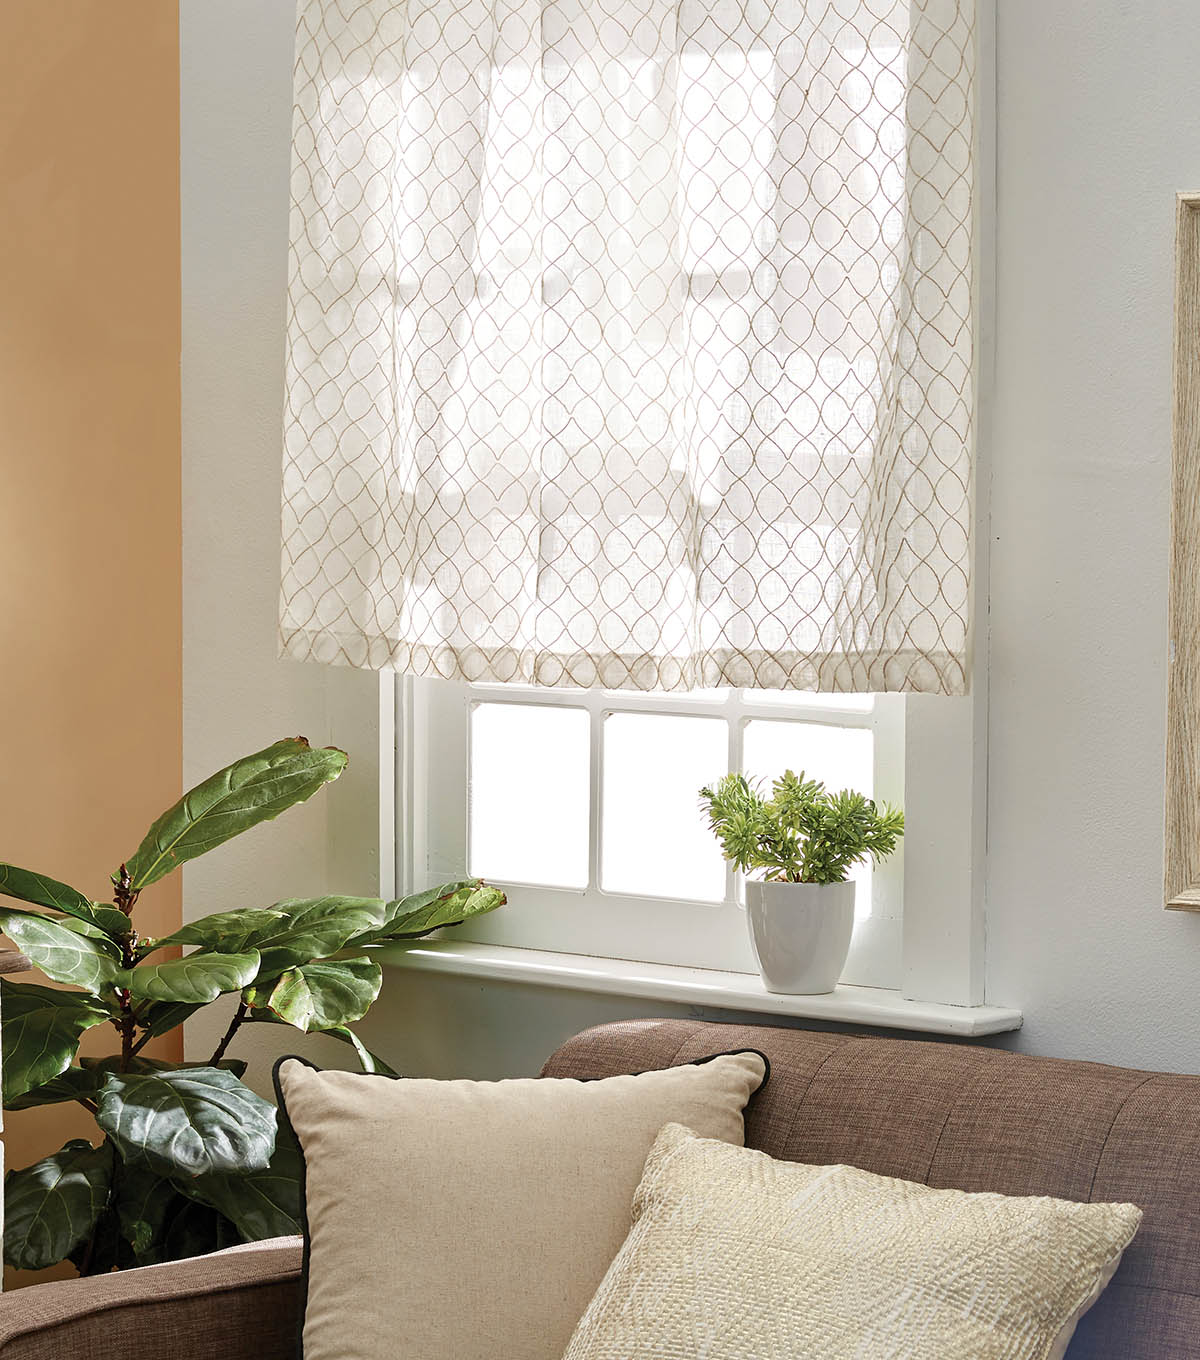 Make Curtains How To Make Sheer Café Curtains Joann